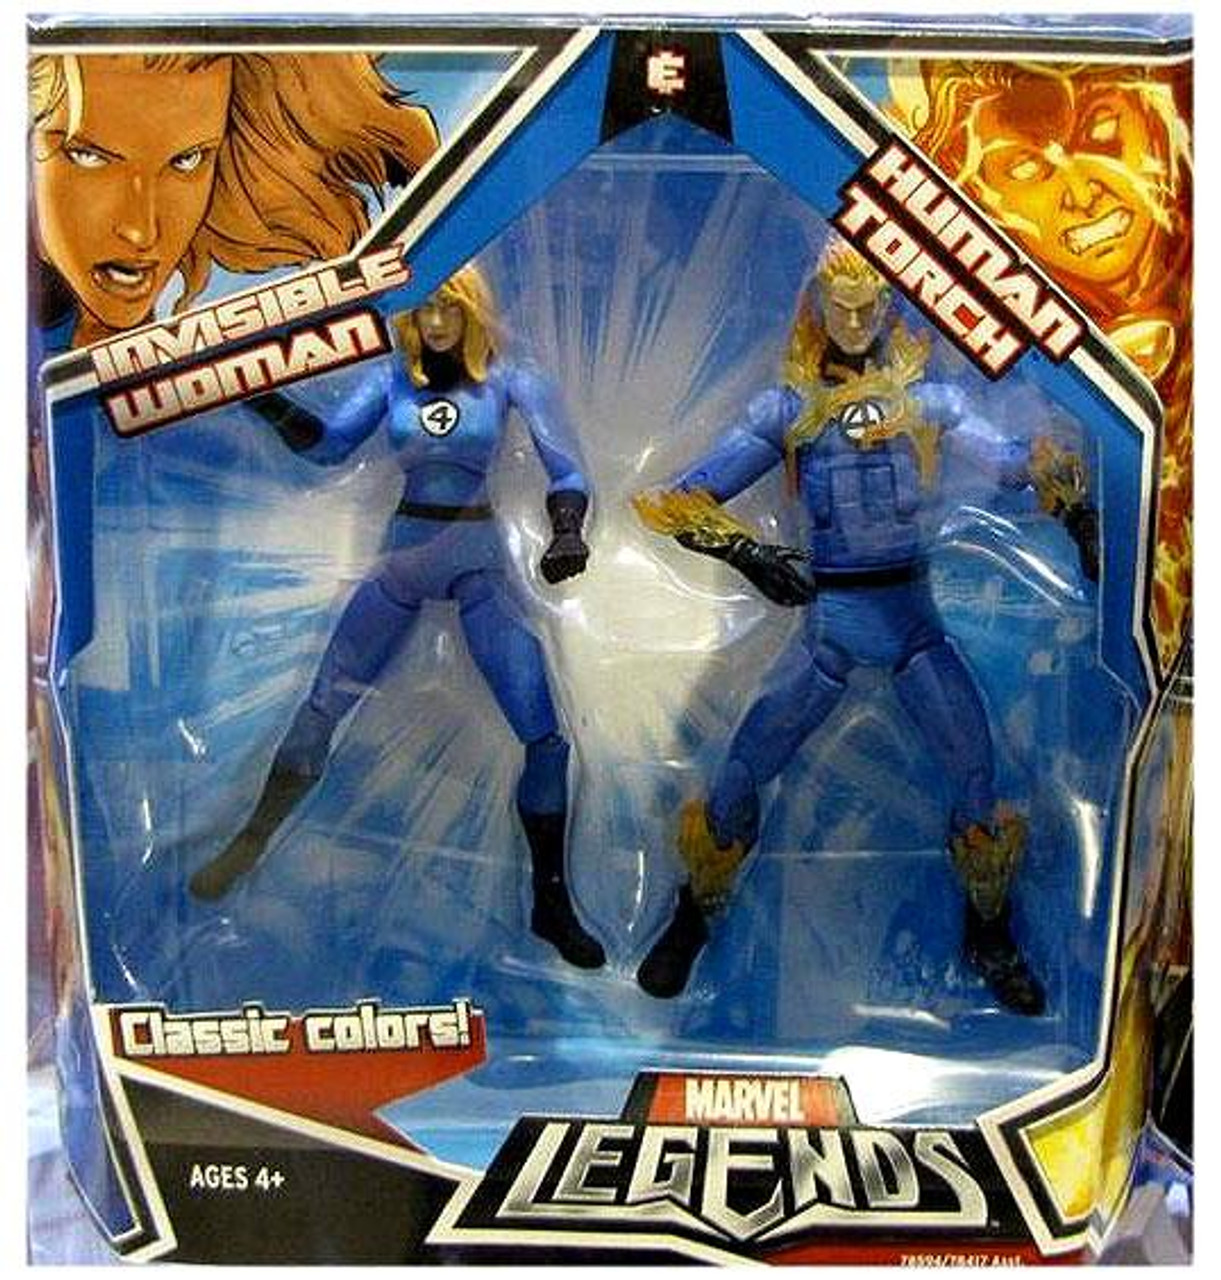 Marvel Legends Human Torch & Invisible Woman Action Figure 2-Pack